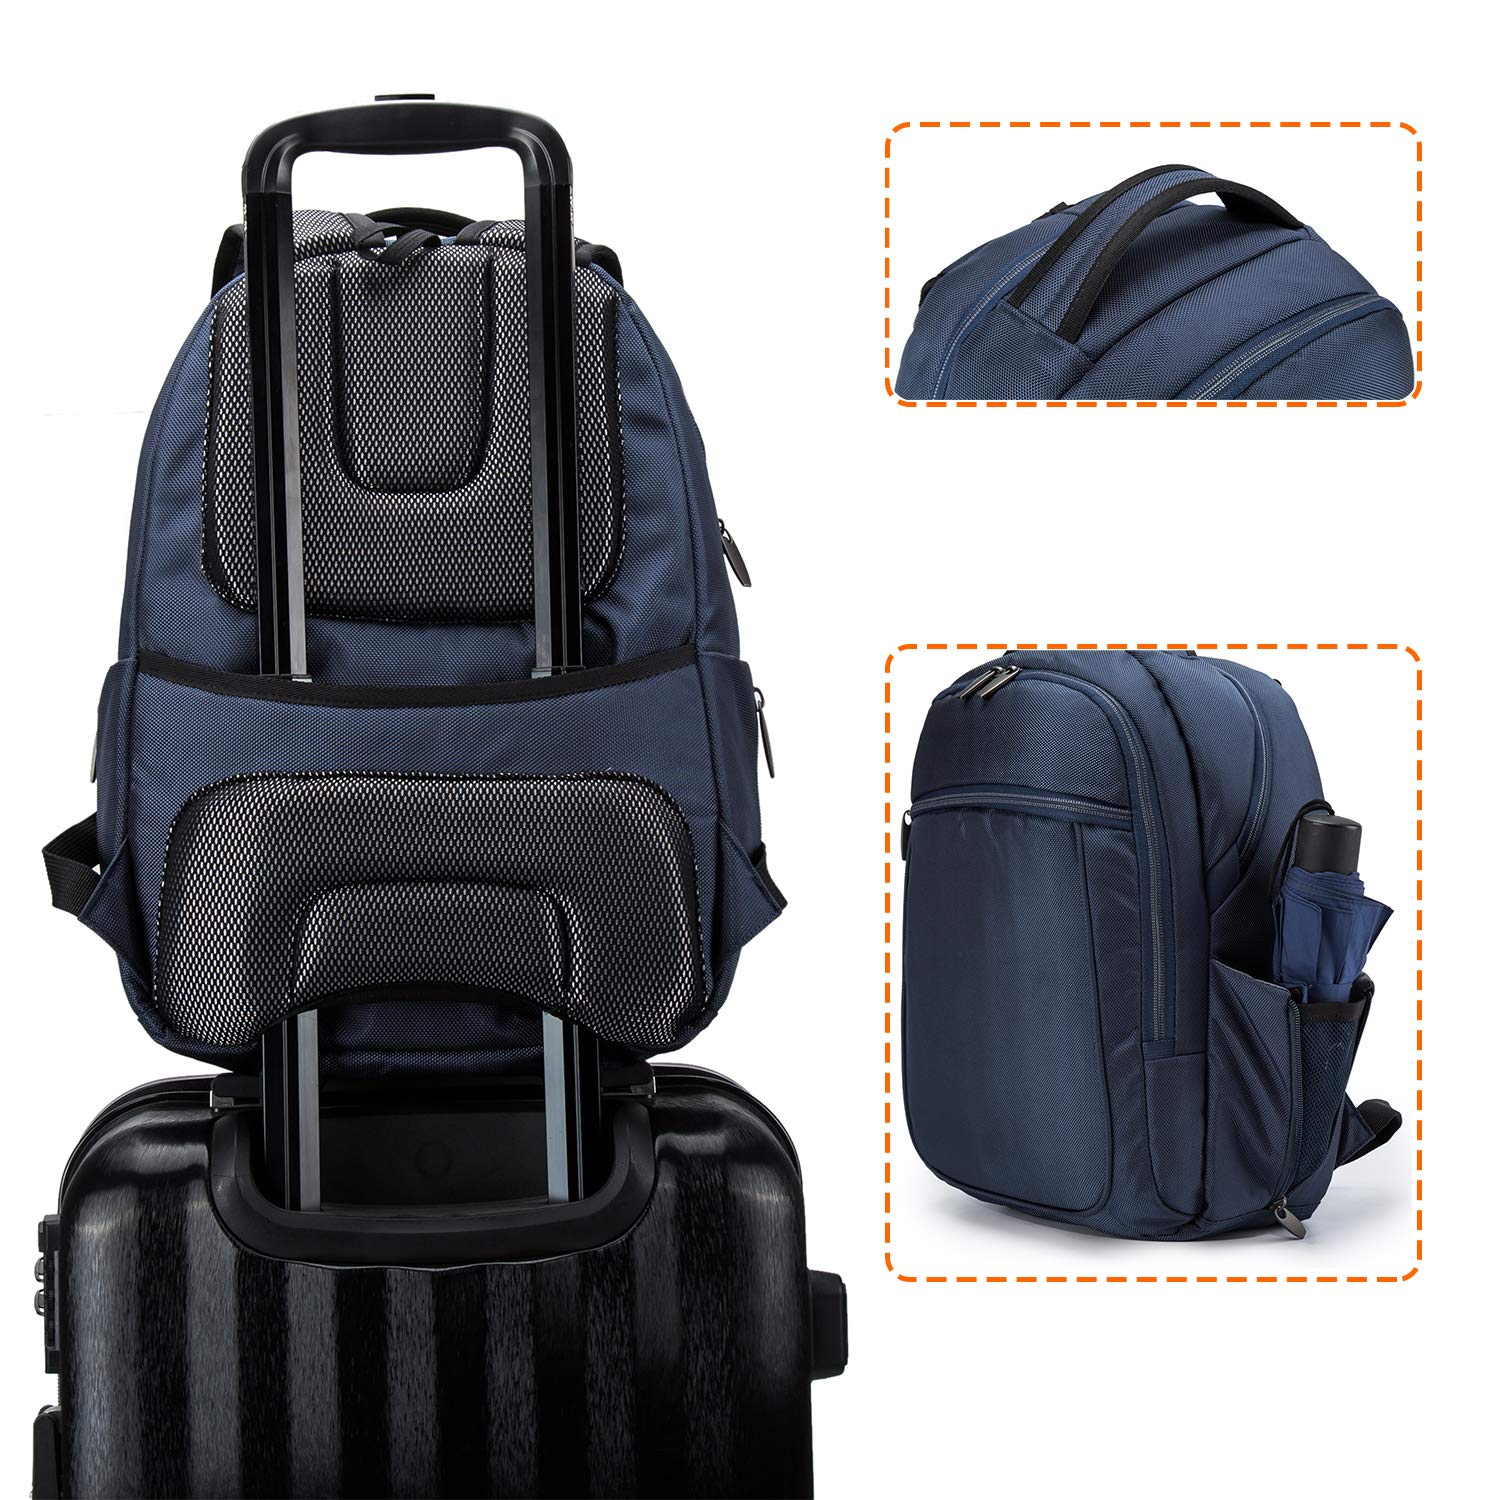 Wemk Laptop Backpack, Business Backpack, Travel Computer Backpack for Women & Men, Water Resistant College School Computer Bag with a Little Bag, Fits 14.1 Inch Laptop& Notebook (Blue) by Wemk (Image #5)